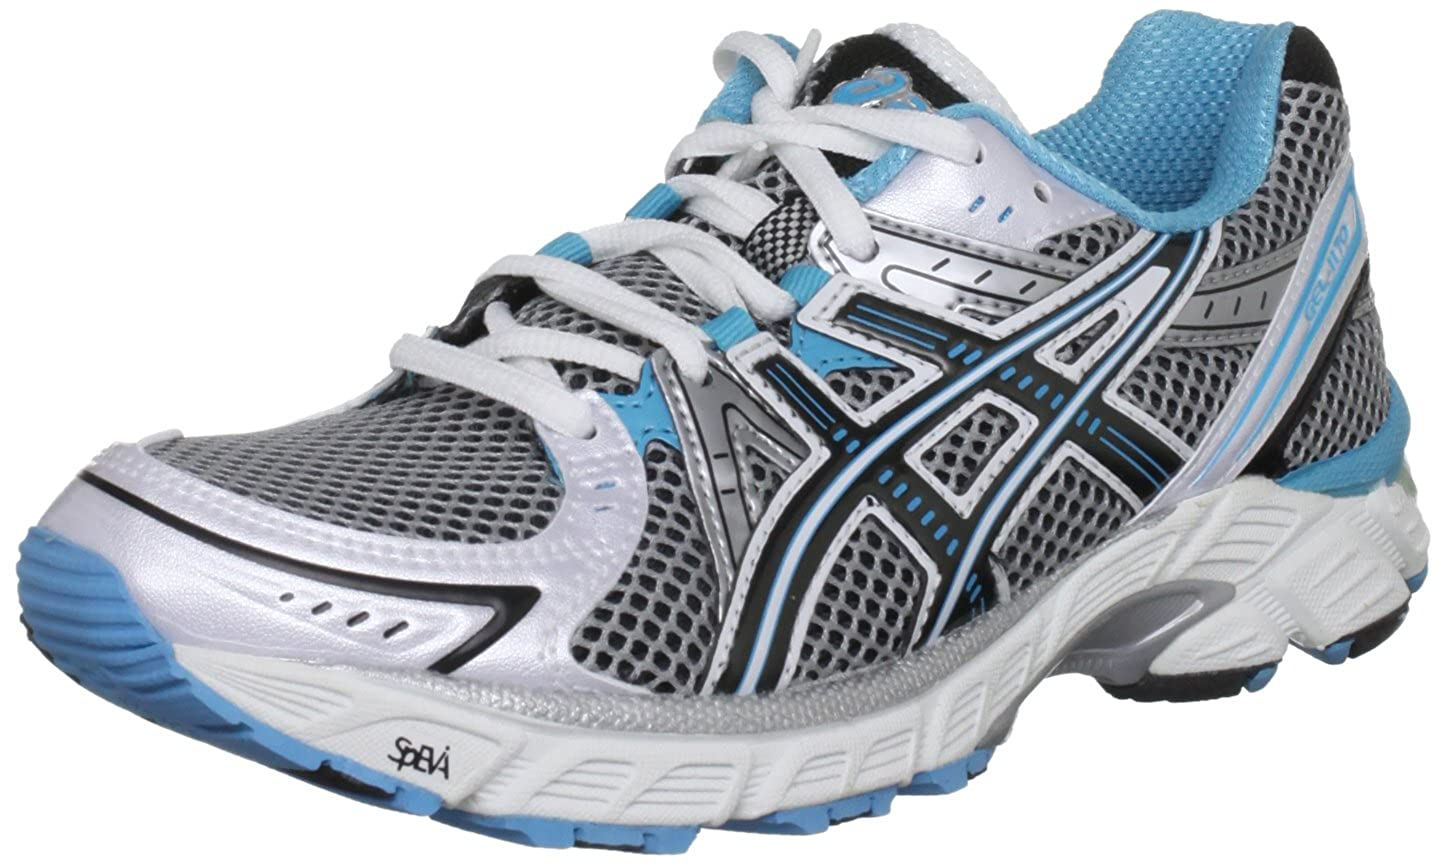 Details about NEW Women's Asics Gel 1170 Size 6 B (Medium) Supportive Athletic Shoe